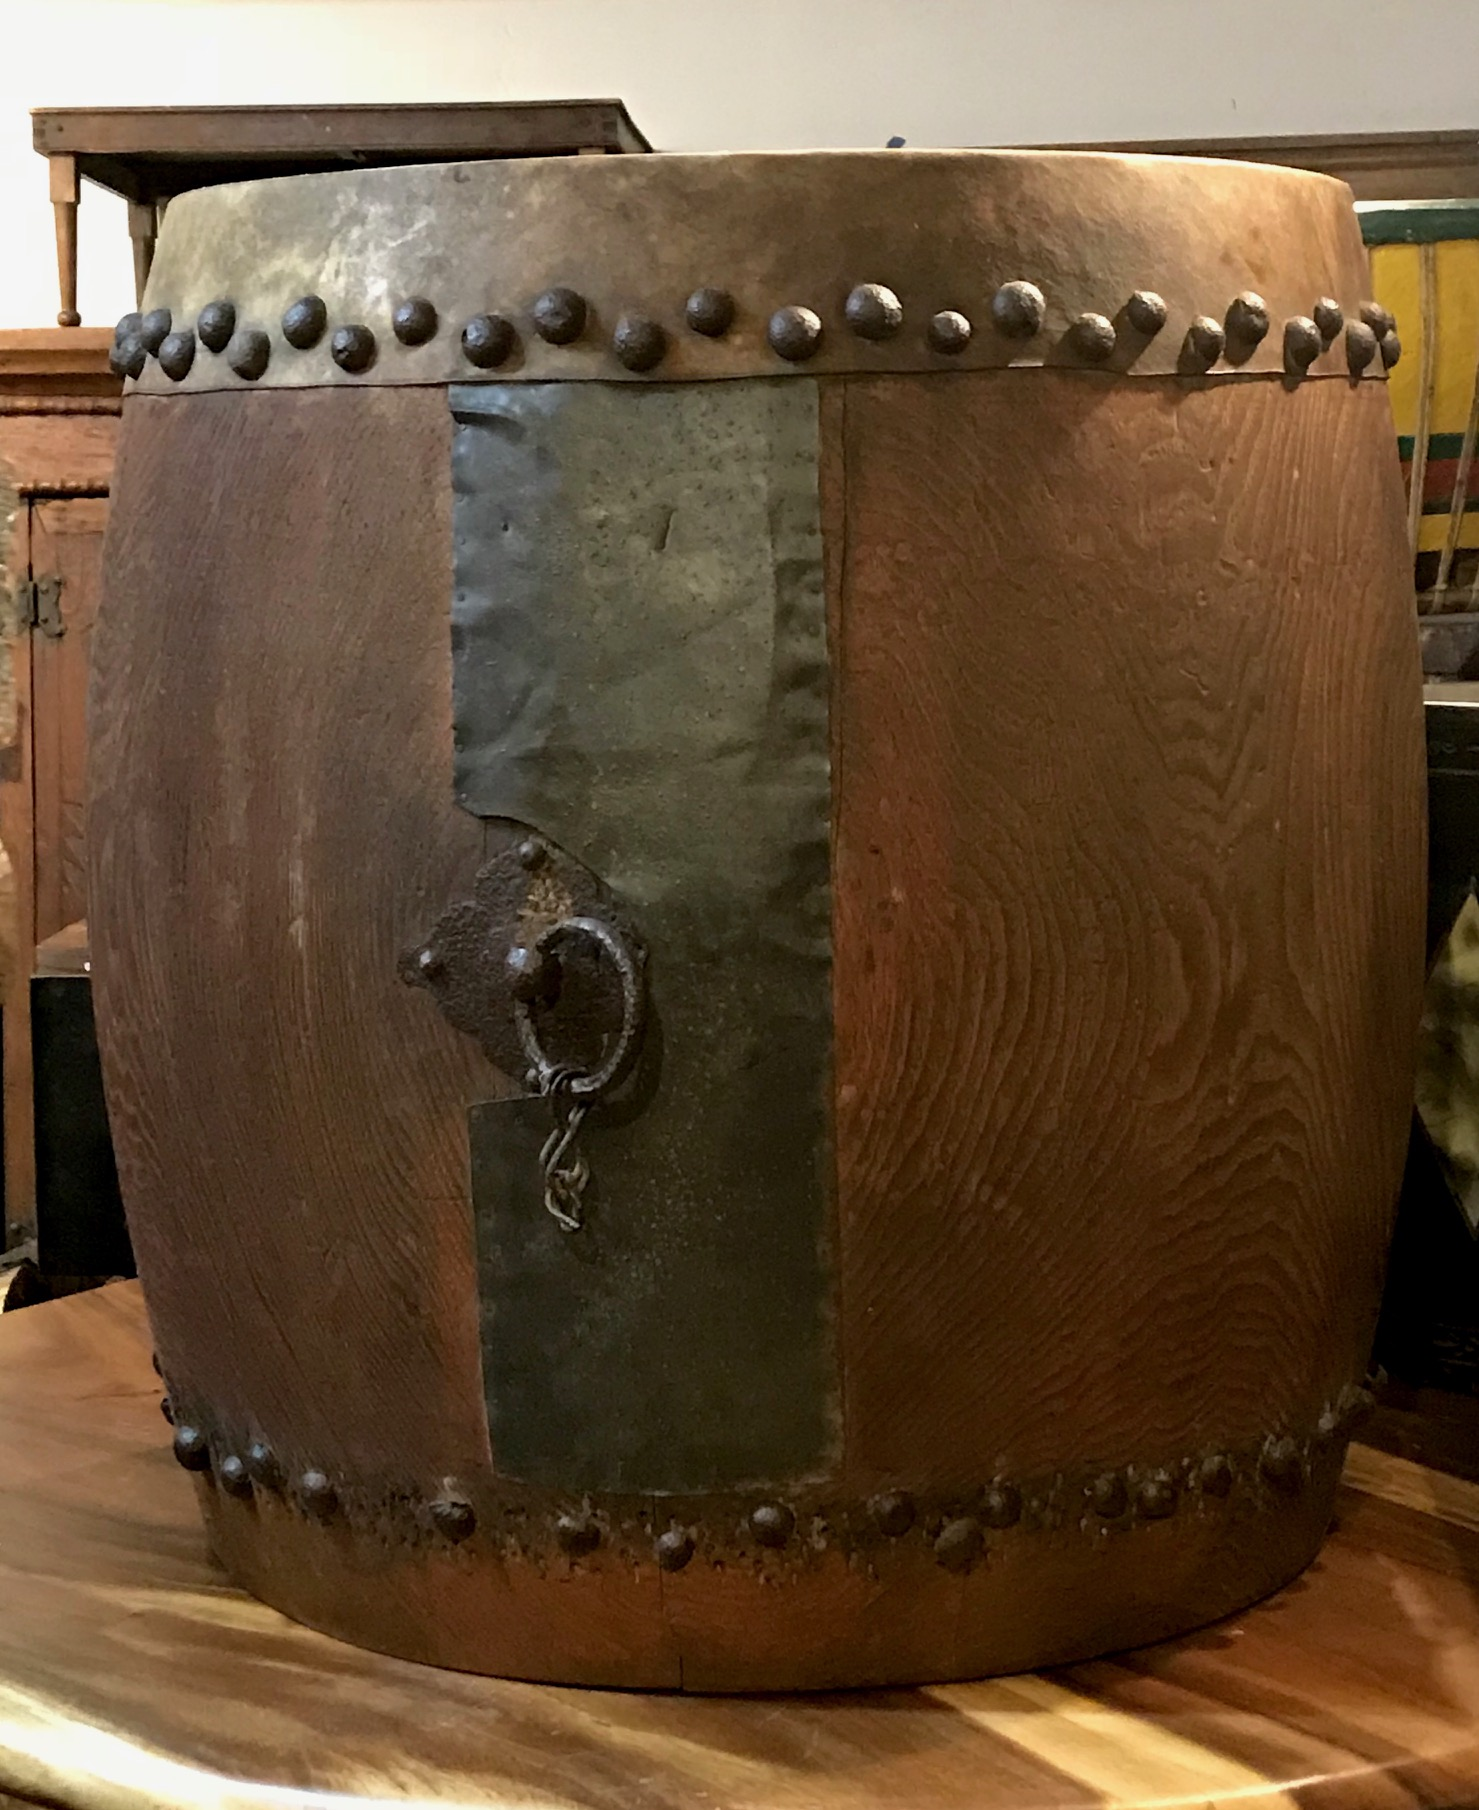 """Musical Instrument, Edo period Taiko Buddhist Drum, Japan, 18th c, keyaki wood (Japanese red elm), metal panel on side, metal tacks on rawhide skin (missing center of drum head skin on both sides) Metal ring with rope for carrying, 29 1/2"""" x 34"""", $2800. thedavidalancollection.com , solana beach, ca"""